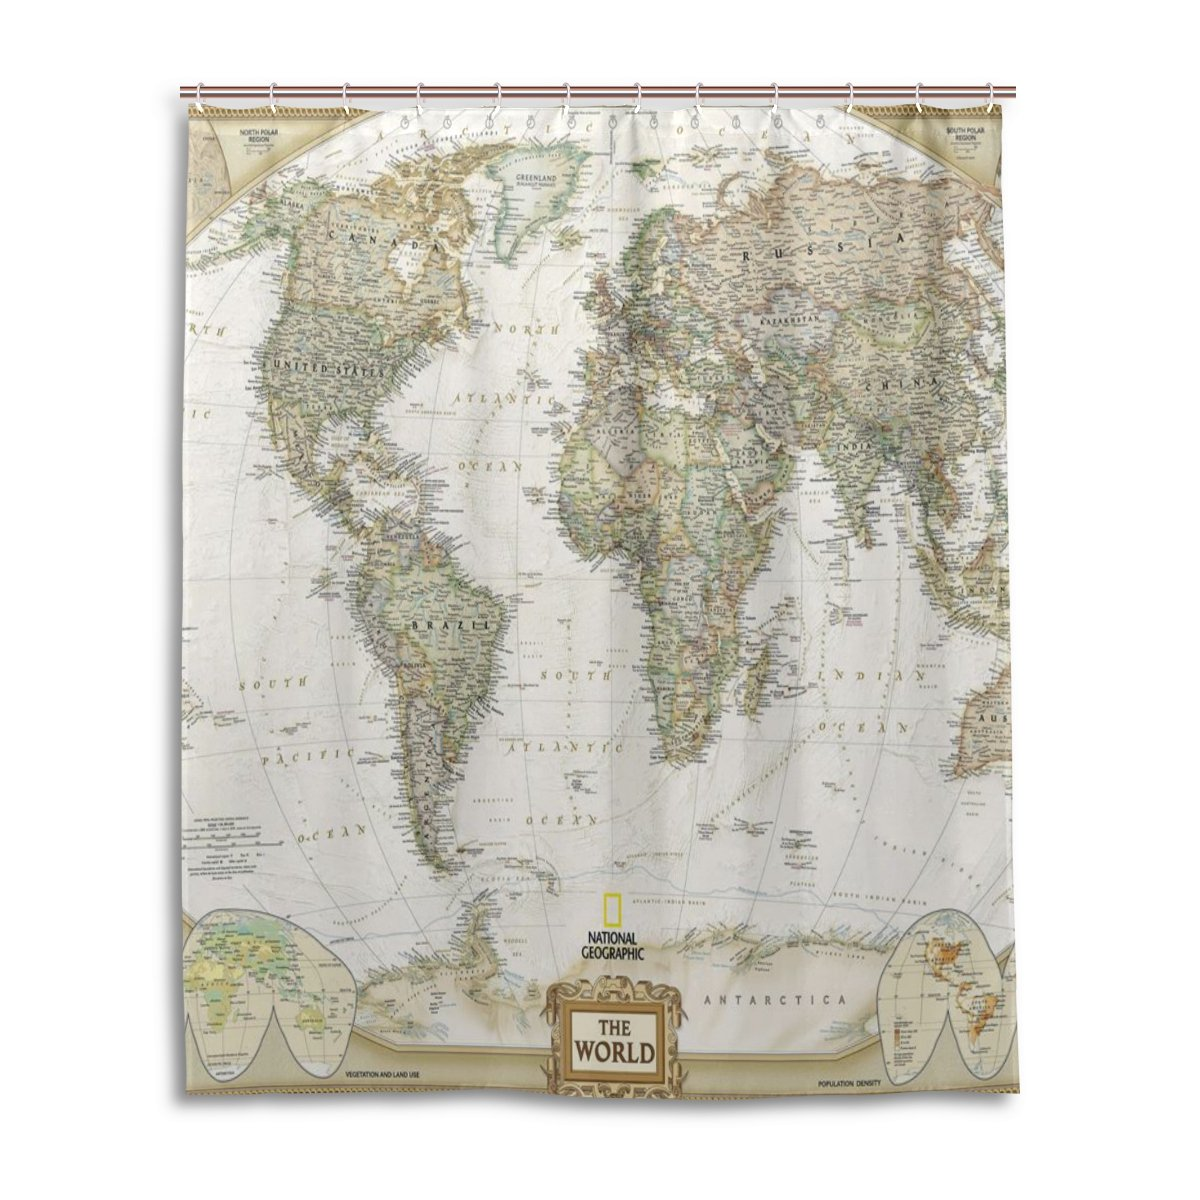 Bath Shower Curtain 60x72 Inch,Fashion Vintage World Map,Waterproof Polyester Fabric Bathroom Curtain 0